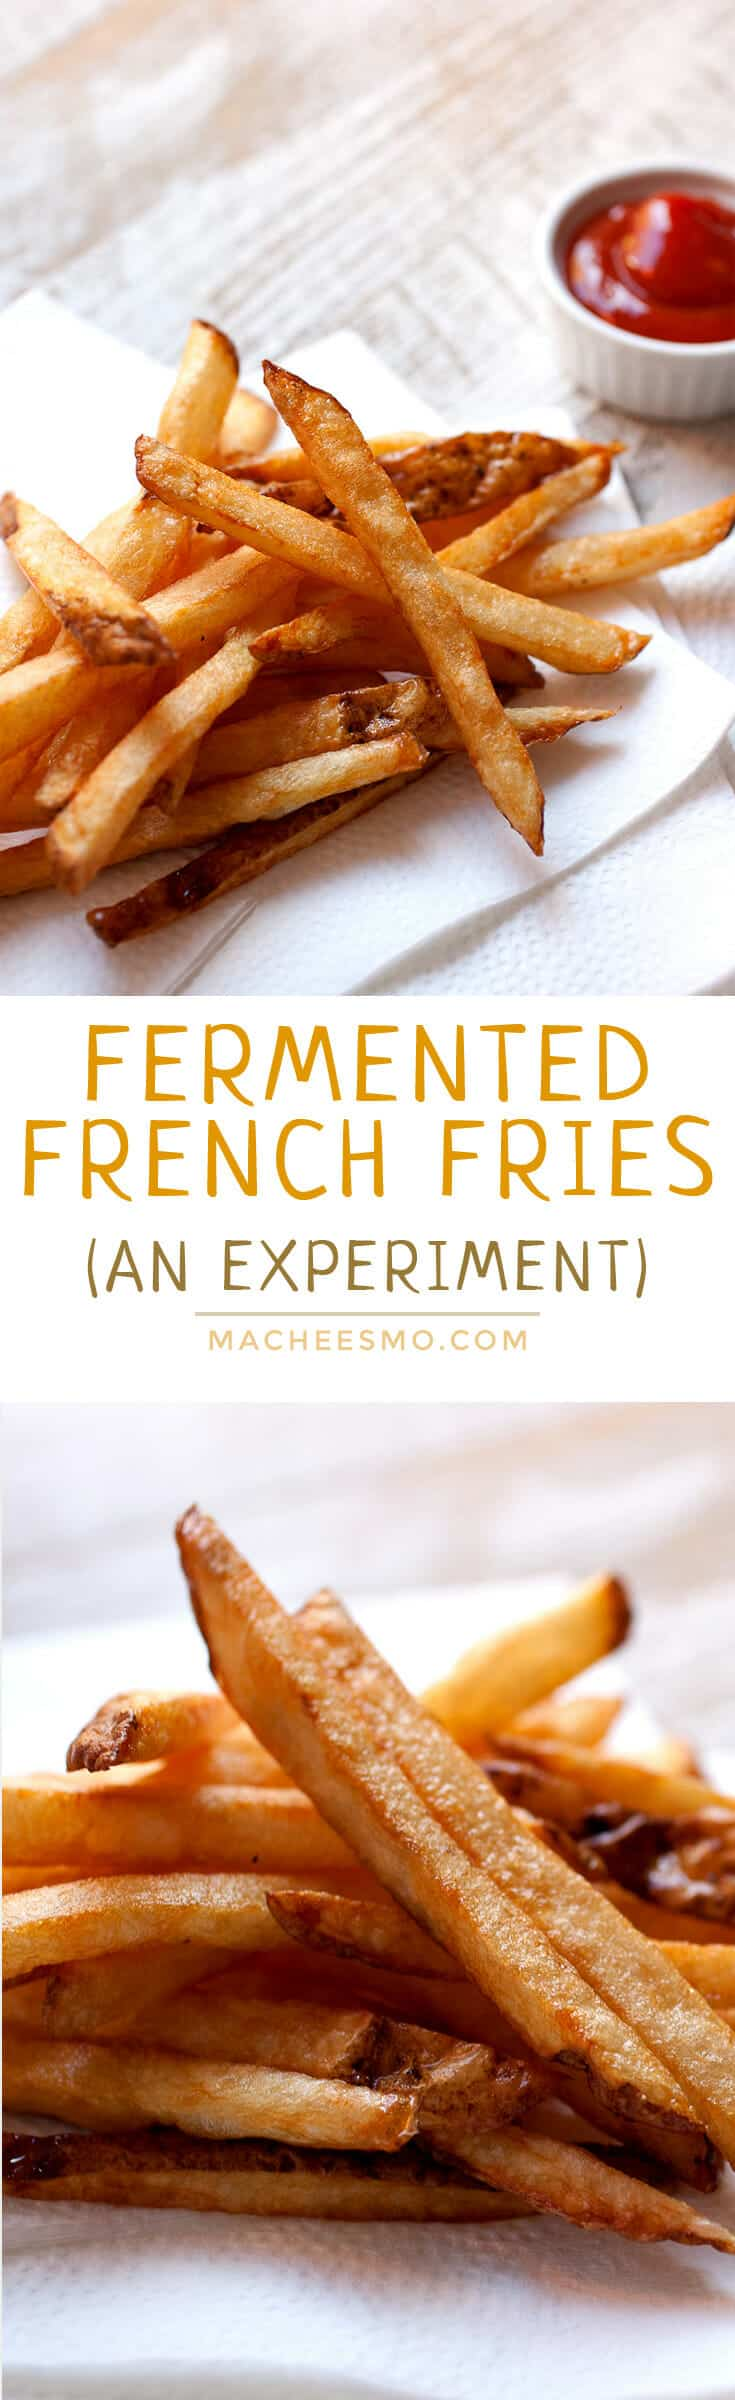 Fermented French Fries: Brined and fermented potatoes double fried for perfectly seasoned and crispy fries. No extra salt needed! These are really delicious, but are they worth the work?!! Check out the post for my full breakdown! | macheesmo.com